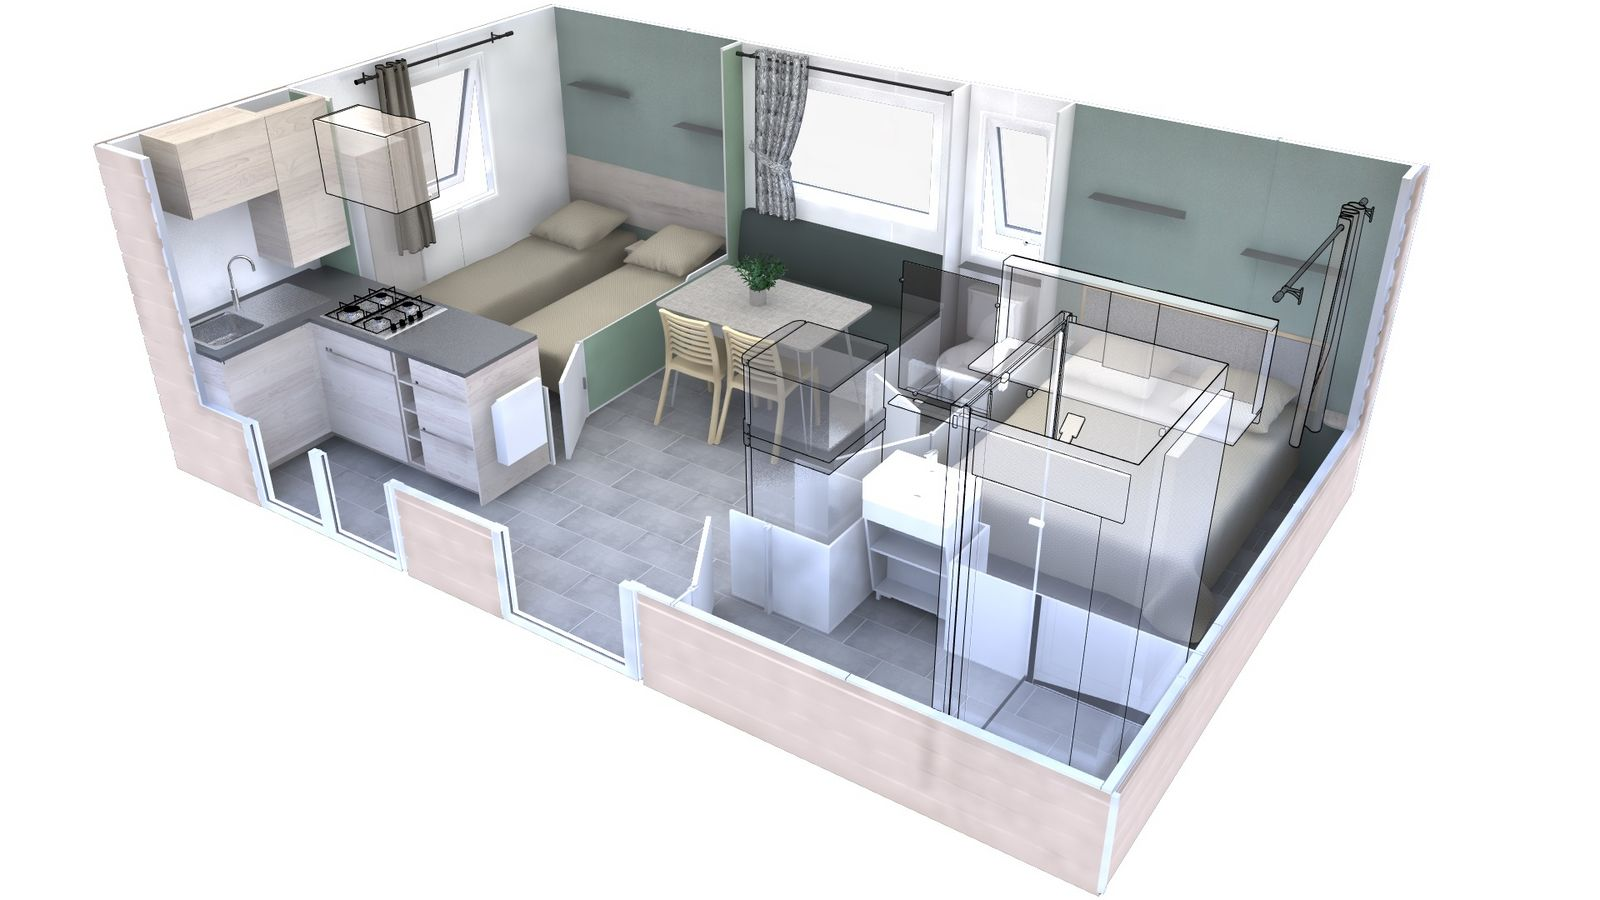 residences-trigano-mobil-home-2chambres-evolution24-plan-3D